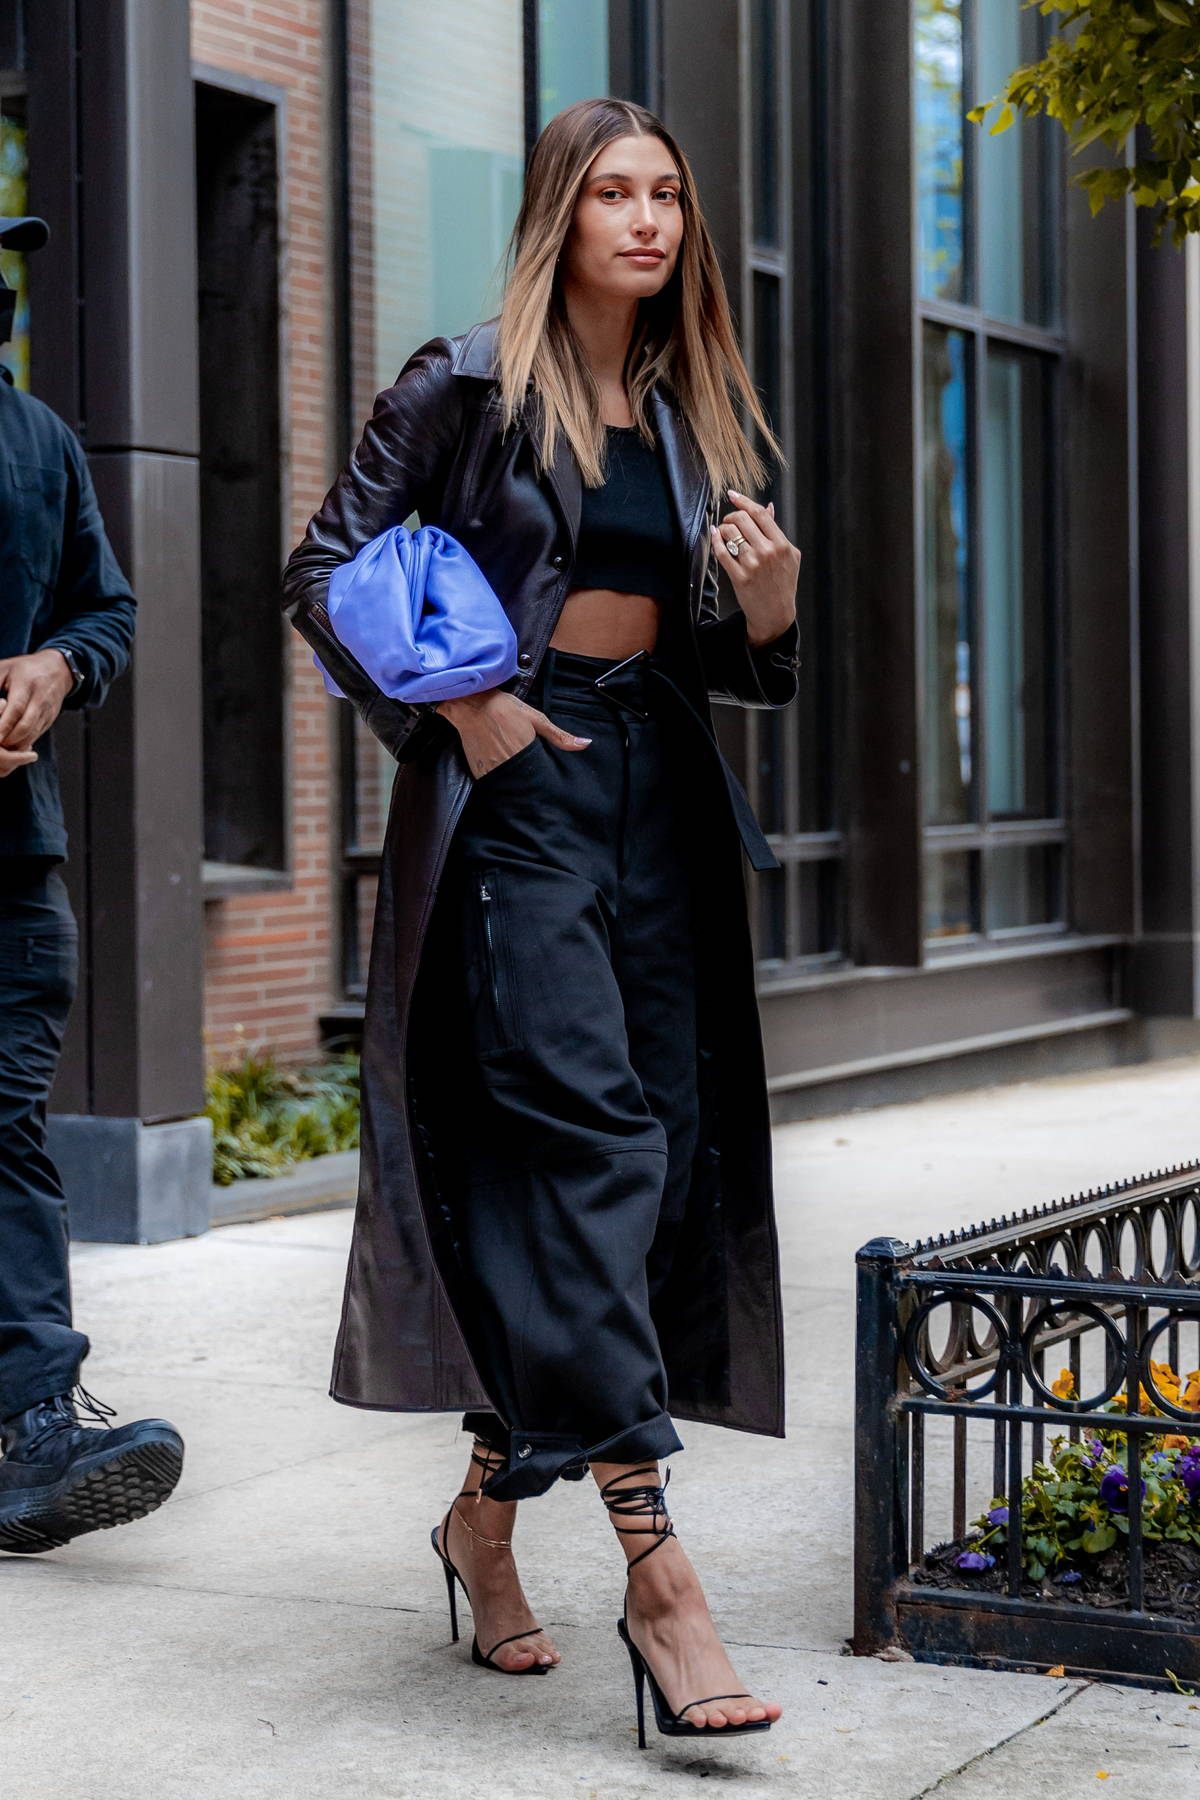 Hailey Bieber looks stylish in a leather trench coat with an all-black ensemble as she leaves her apartment in Brooklyn, New York